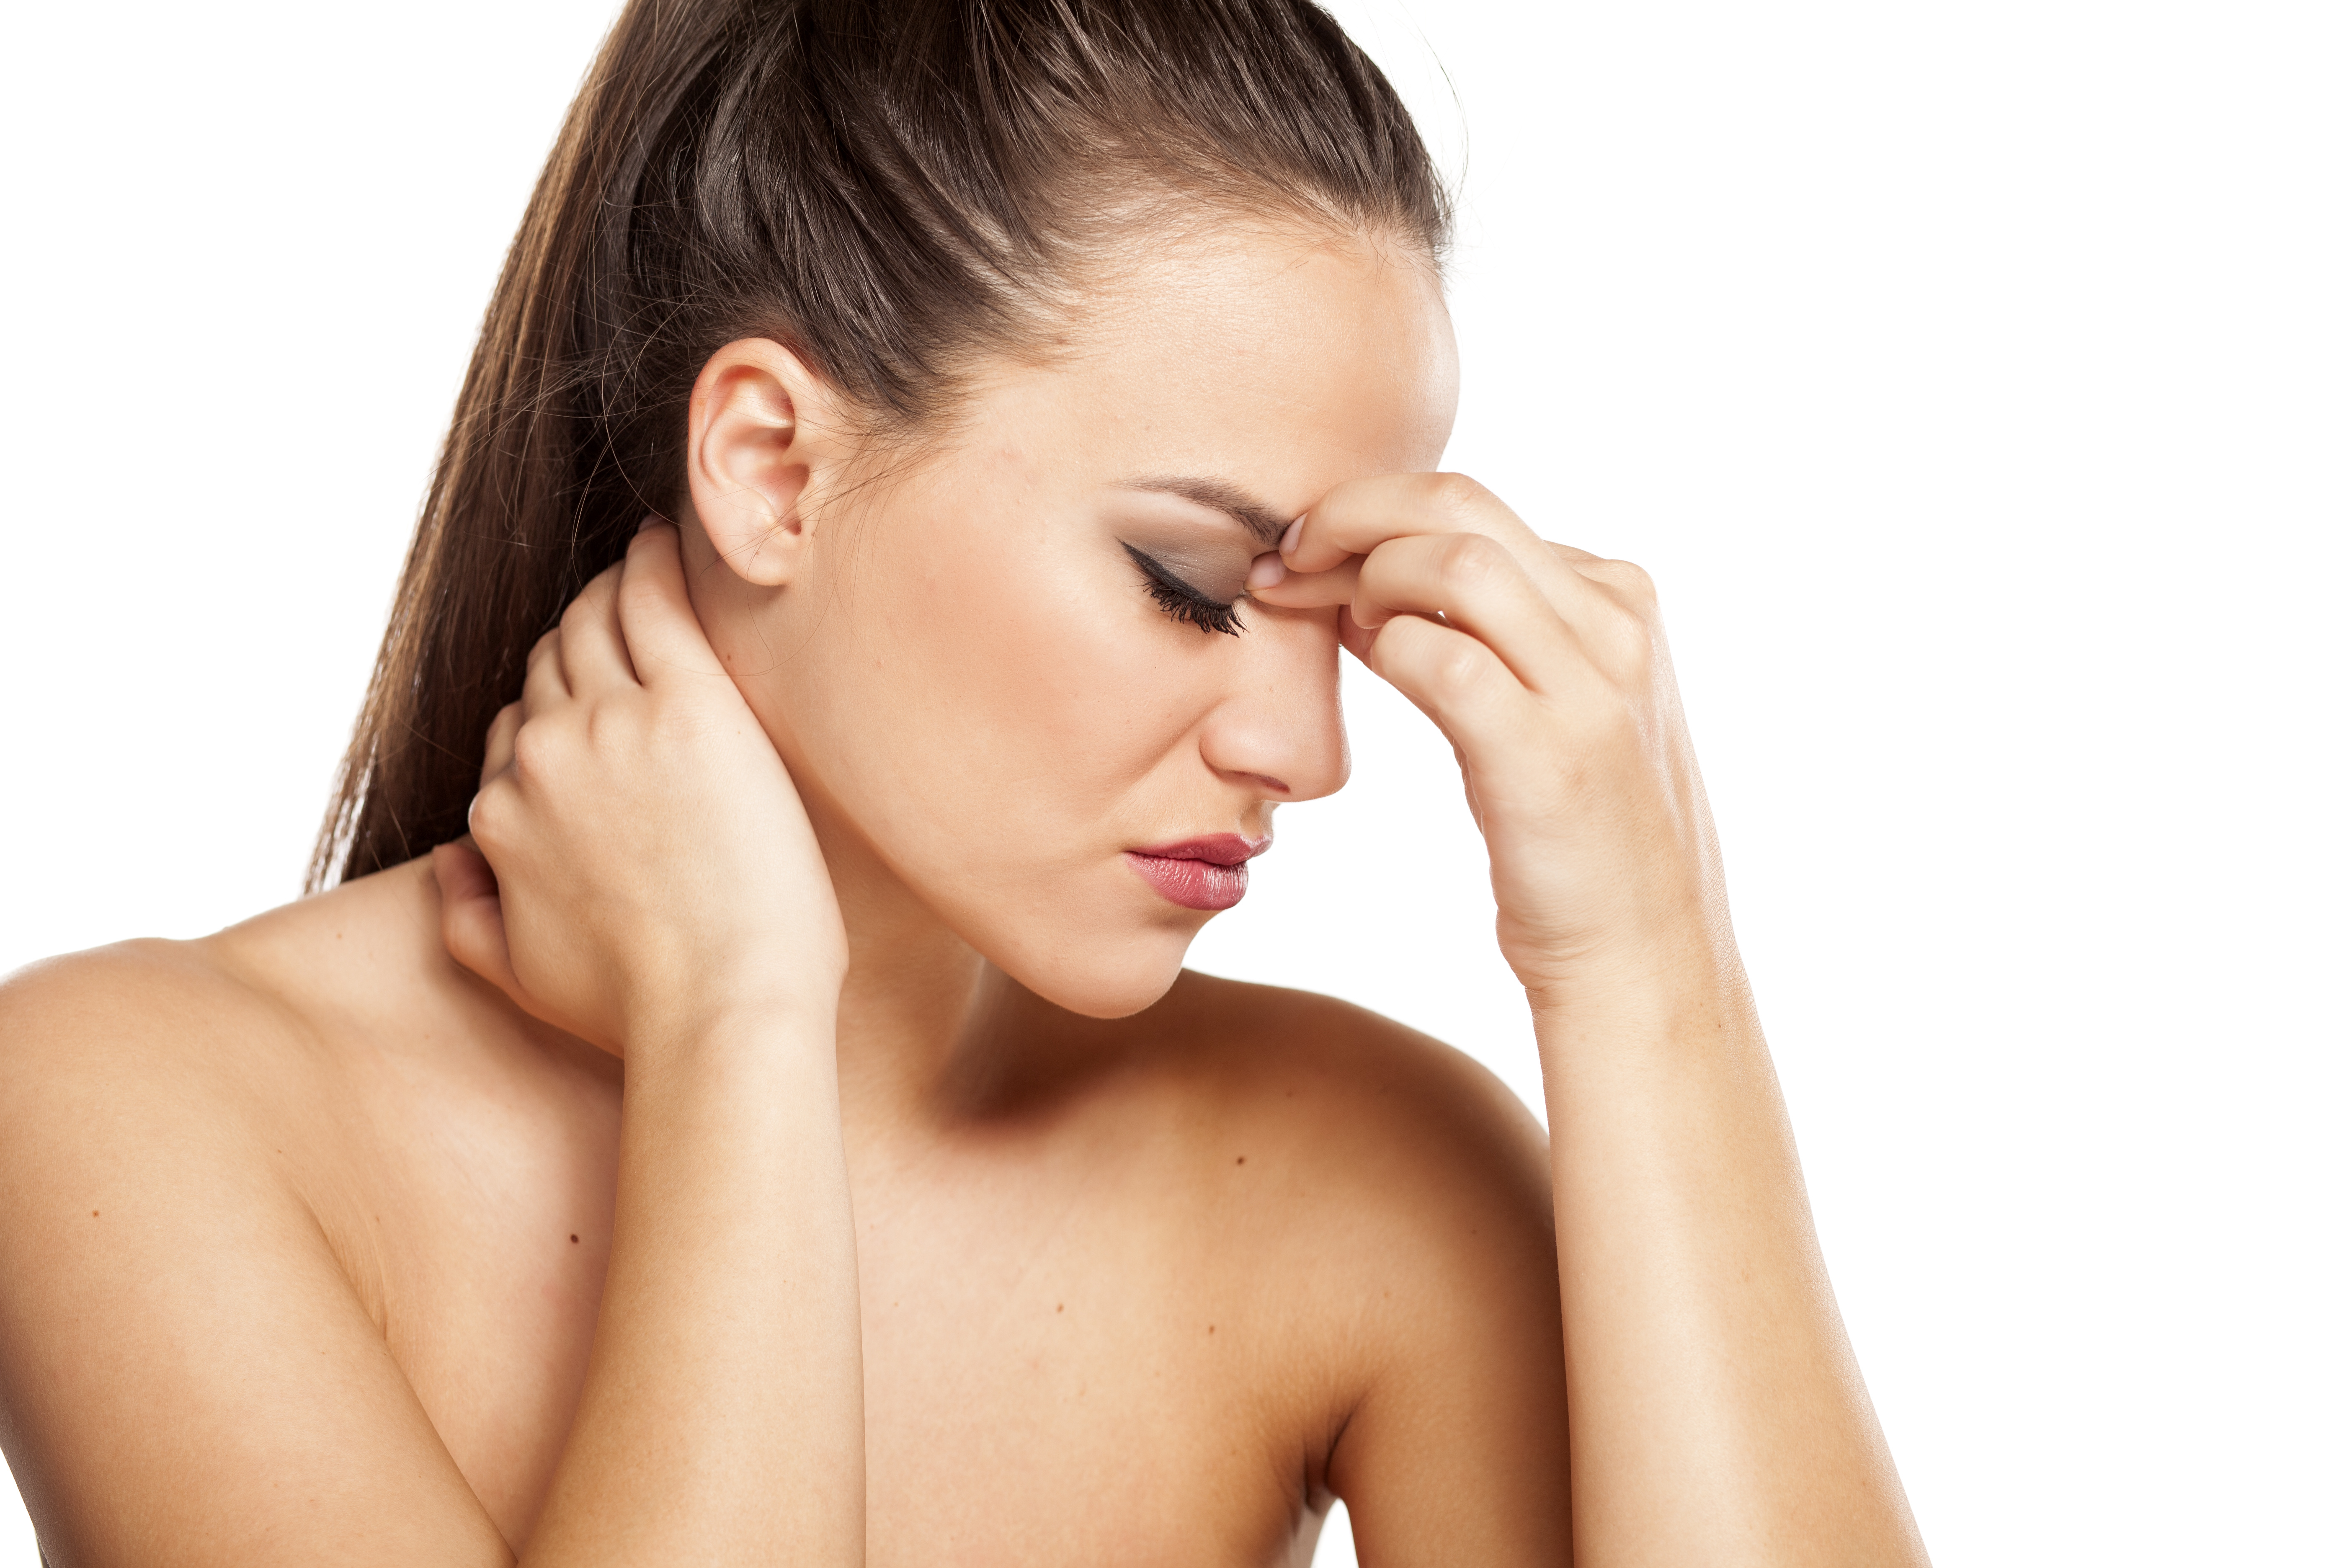 Are You Looking For Natural Headache Treatment In Escondido?